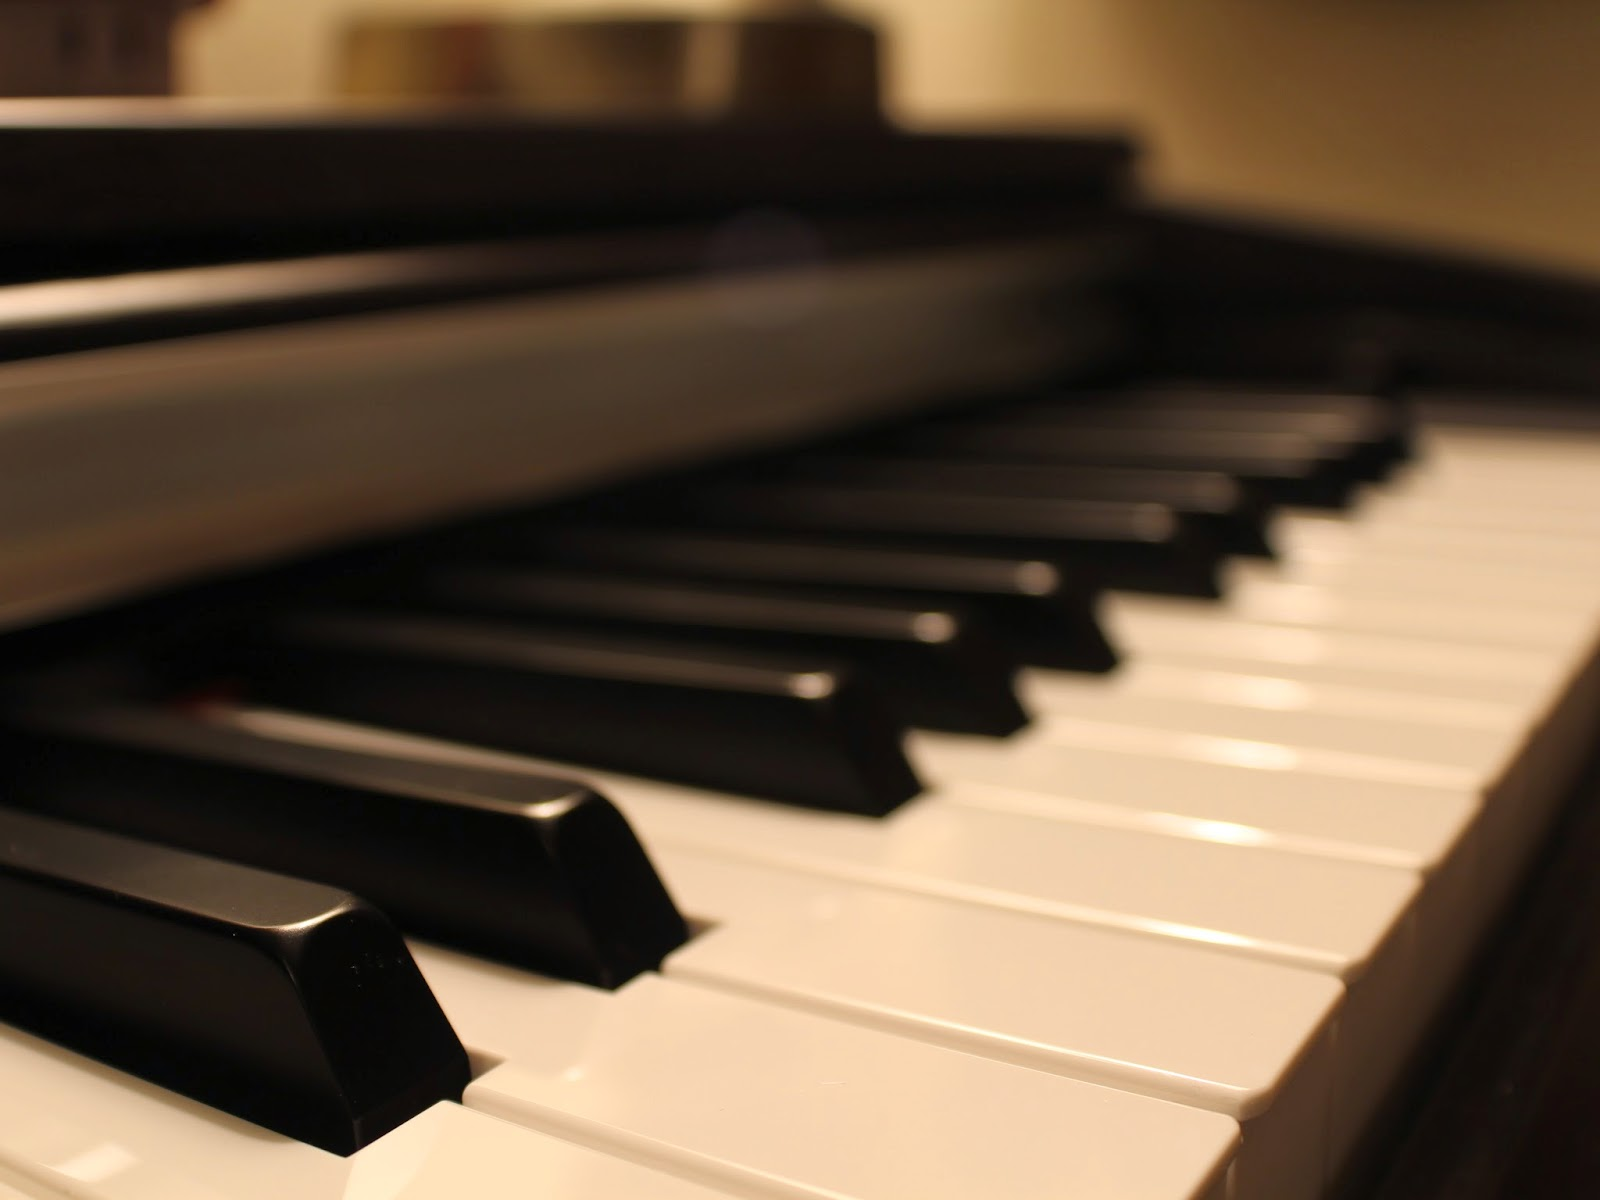 piano wallpaper ndash free - photo #42